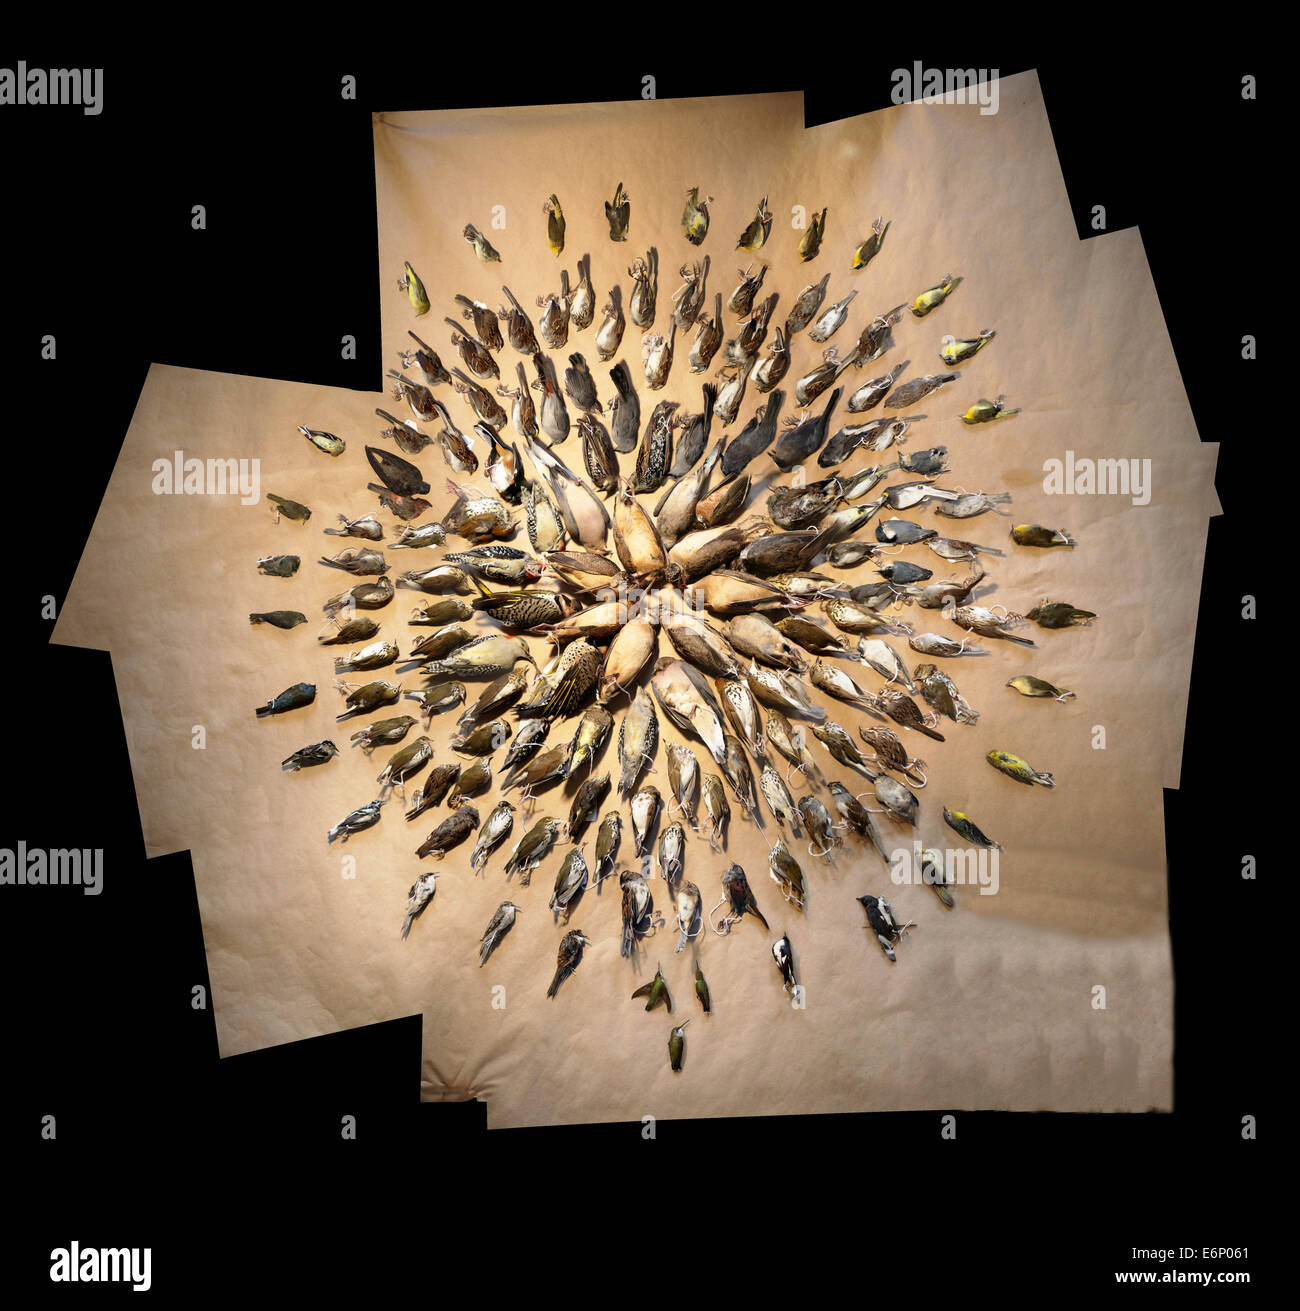 2013LightsOutDC Stiched circle_8517895172_o Sample of Dead Birds that struck buildings in Washington D.C. during - Stock Image